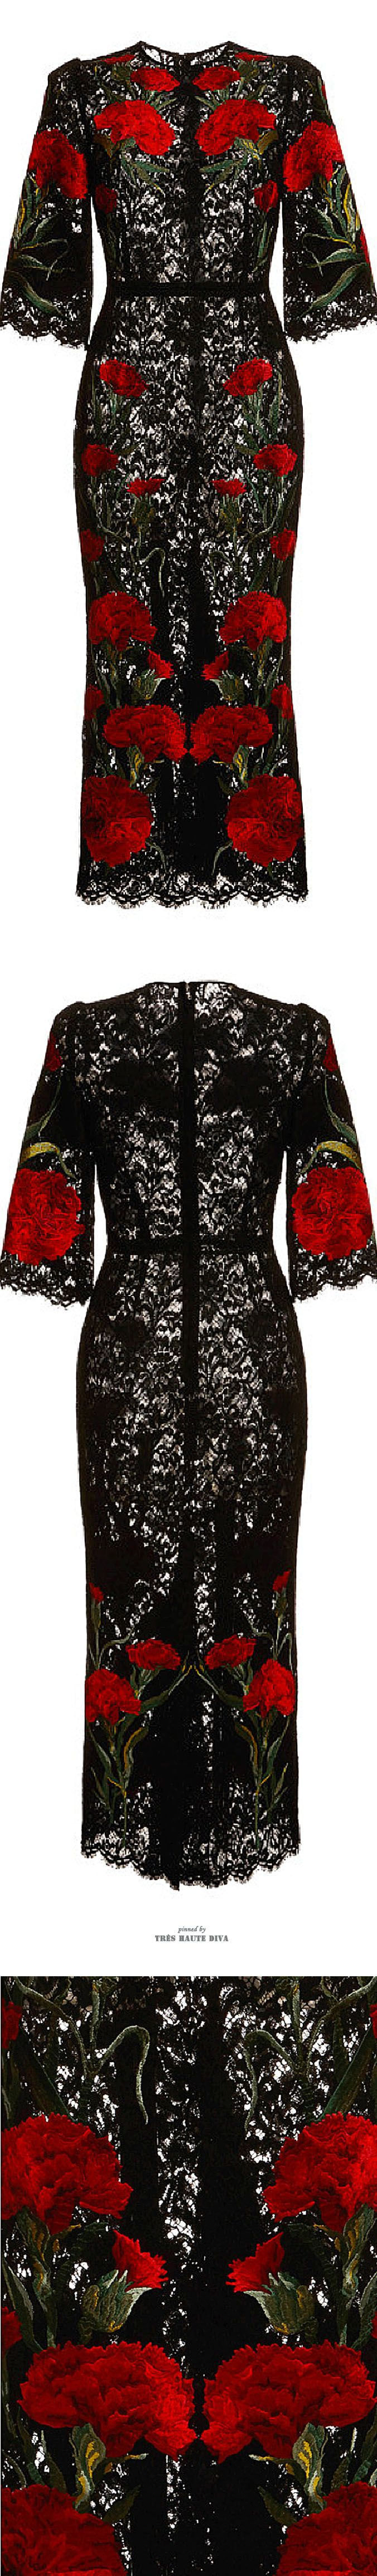 Dolce & Gabbana Carnation Embroidered Long Lace Dress SS 2015